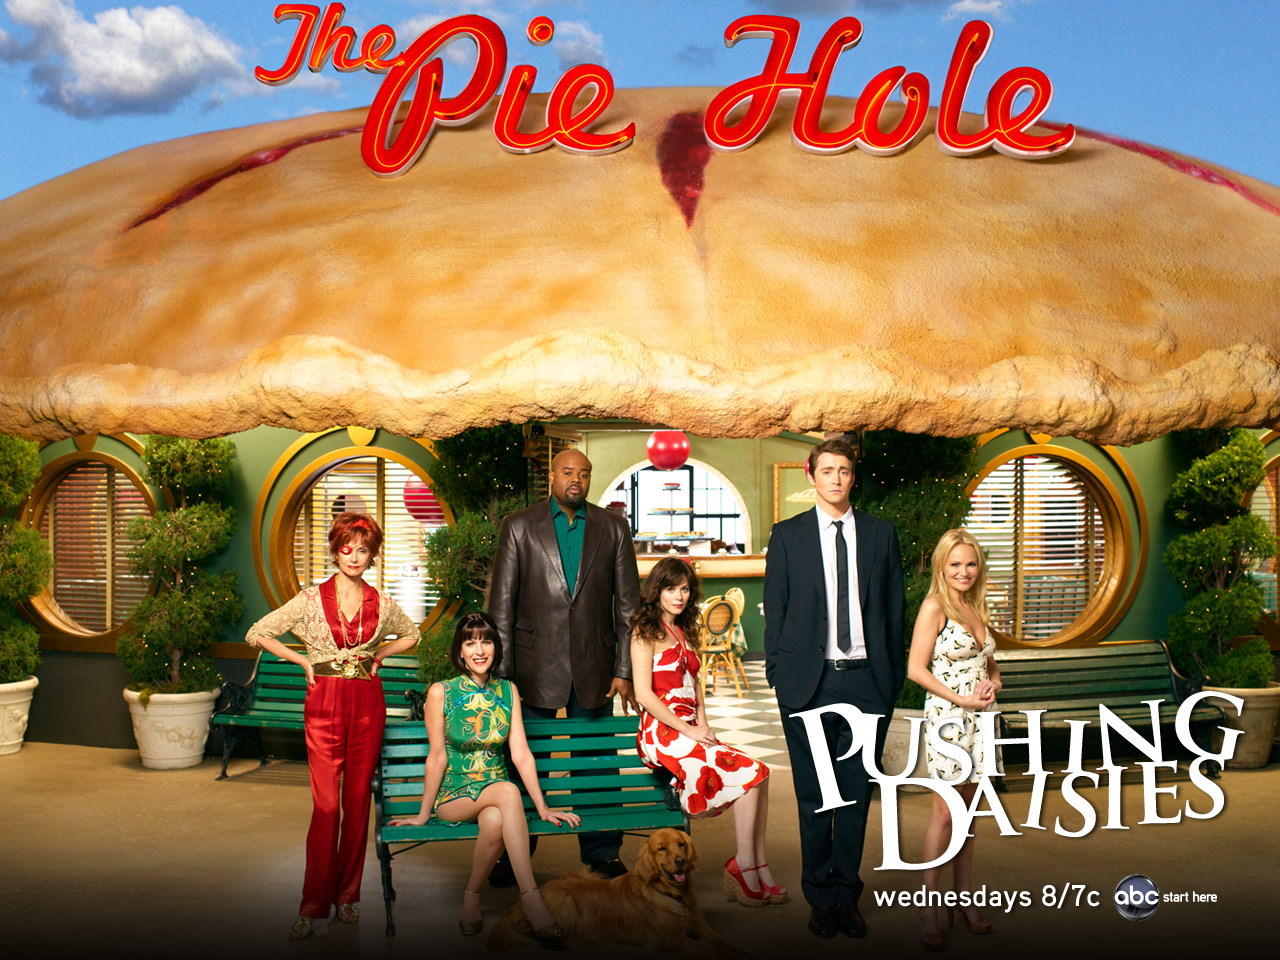 http://images.fanpop.com/images/image_uploads/Cast-Photos-pushing-daisies-332796_1280_960.jpg